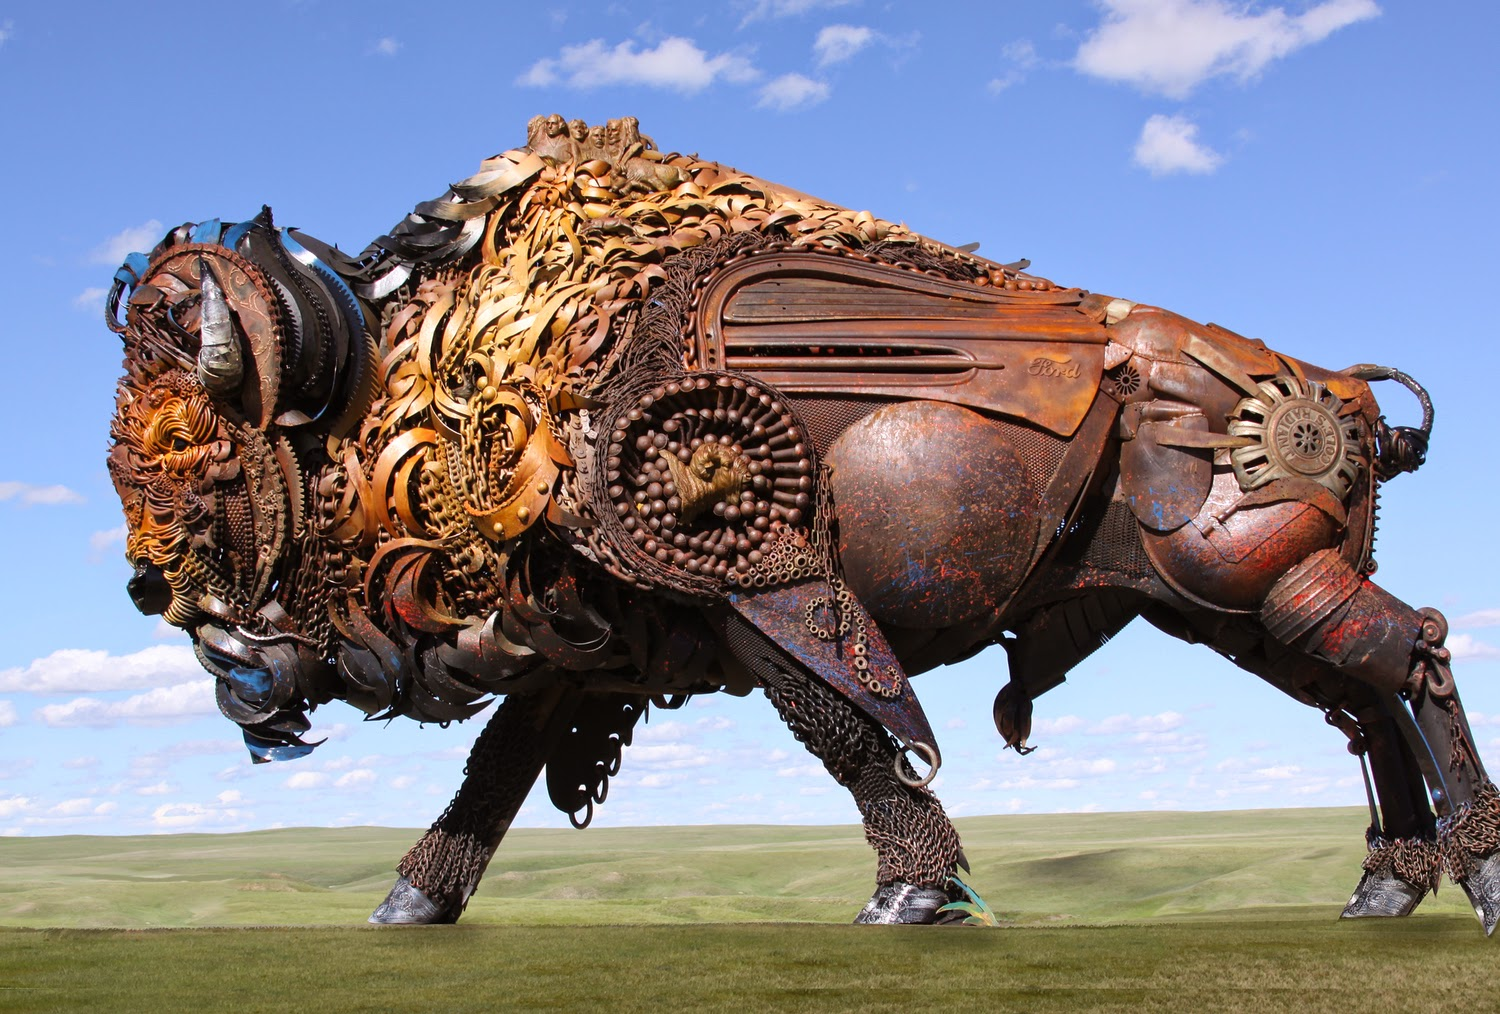 05-John-Lopez-Scrap-Iron-Animal-Sculptures-www-designstack-co